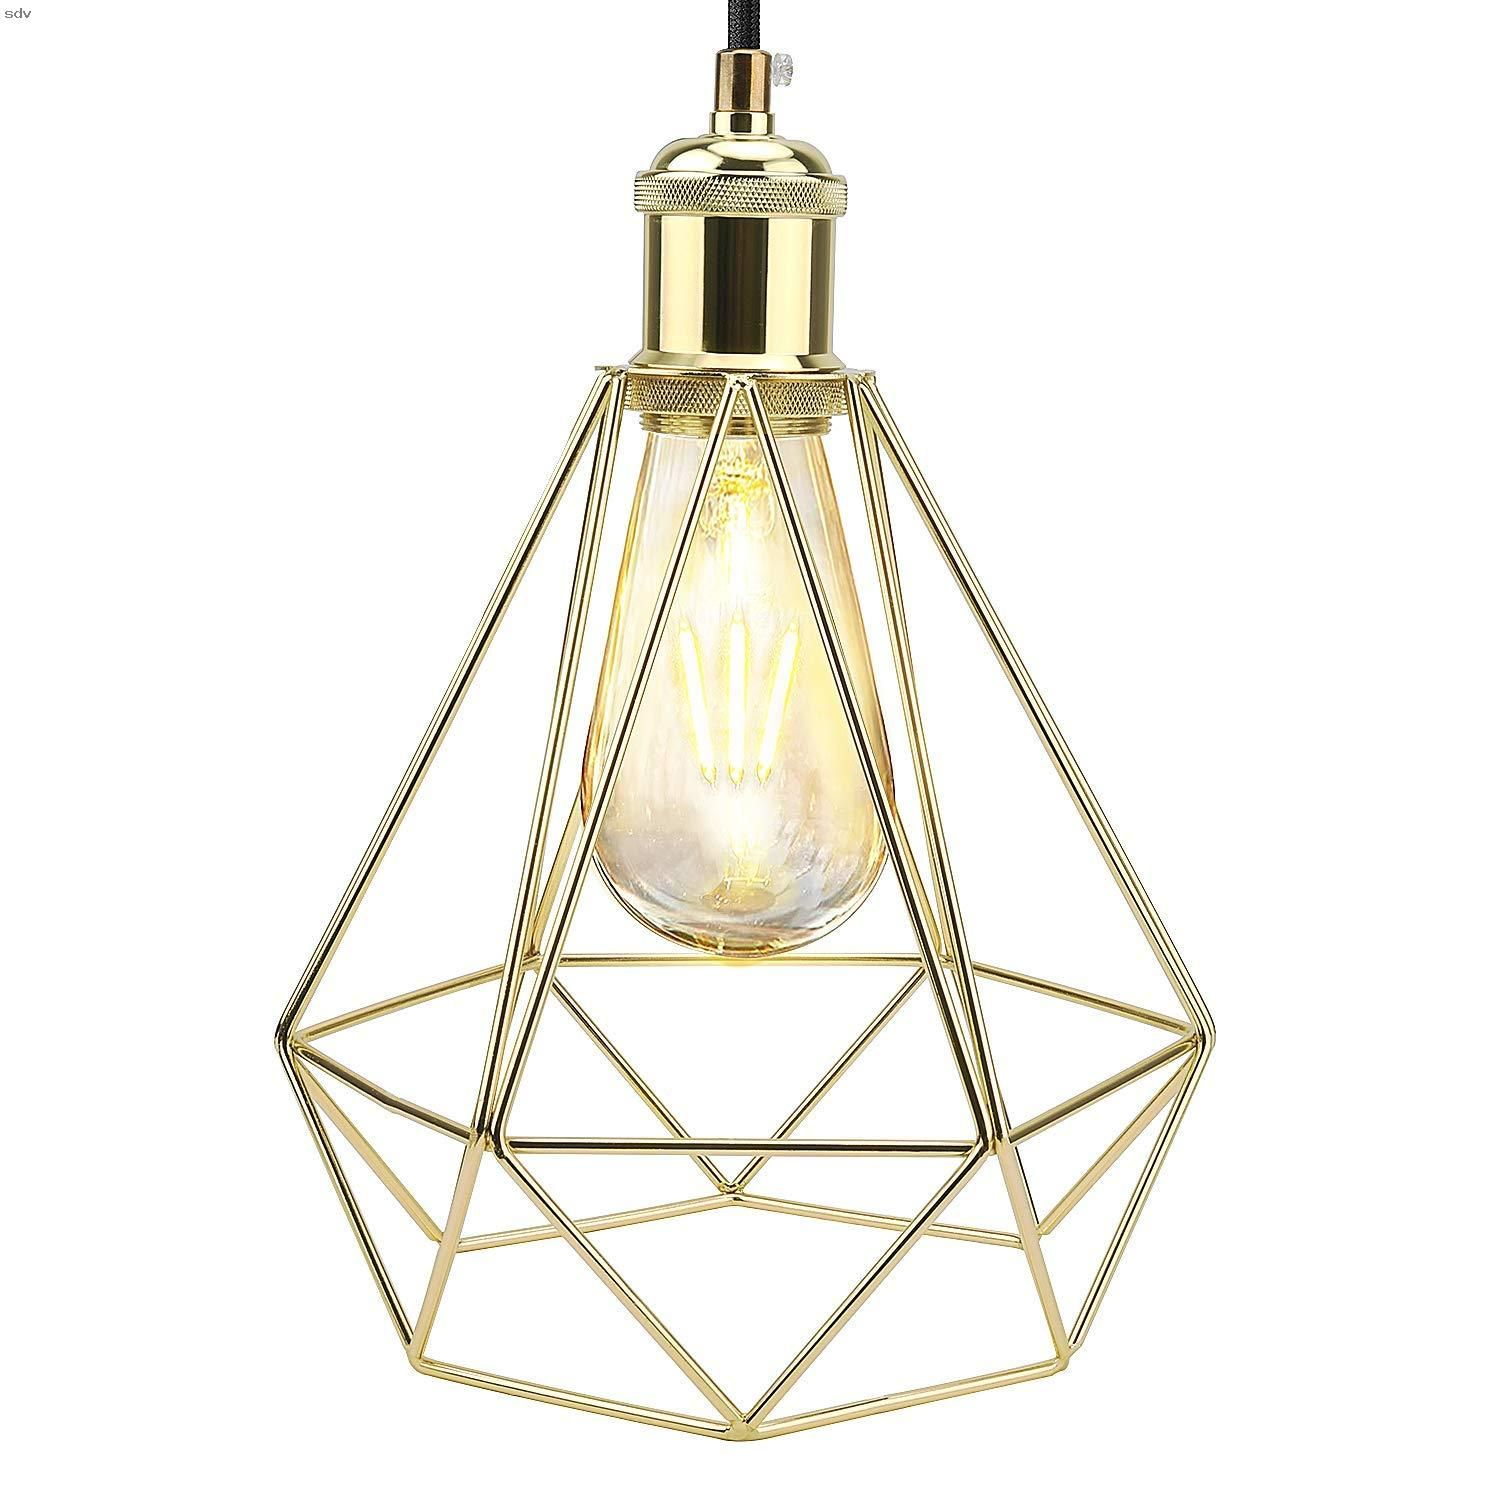 Ul Pendant Light Jackyled Modern Style Polygon Adjustable Cord Hanging Ceiling Gold Pendant Light Wire Cage Pendant Light For Kitchen Island Dining Room Bedroom